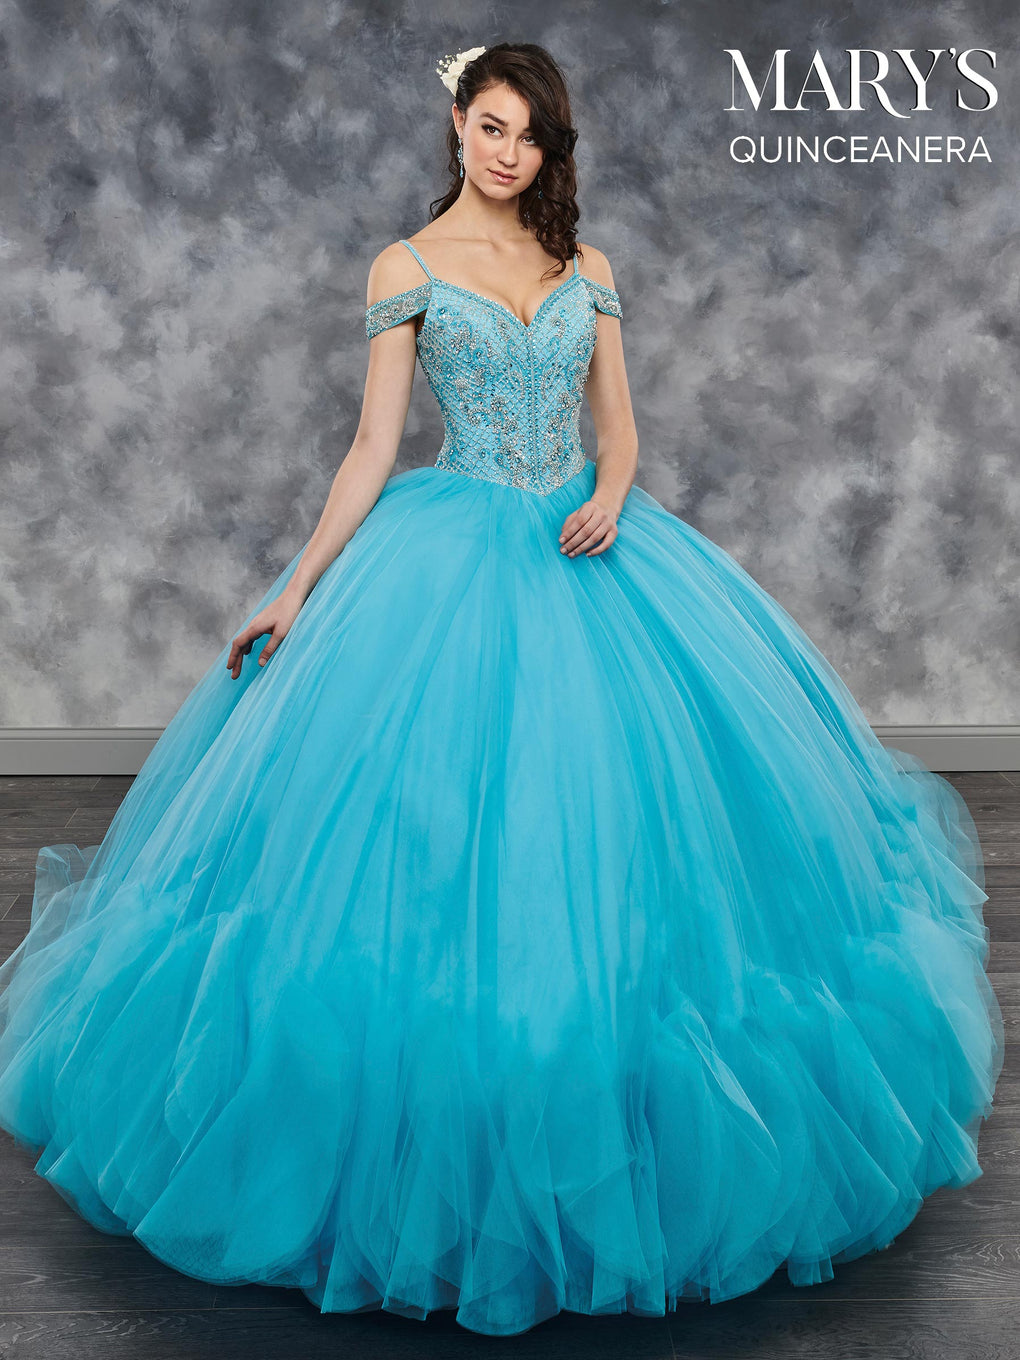 Marys Quinceanera Dresses in Champagne, Hot Fuchsia, Soft Turquoise, or White Color